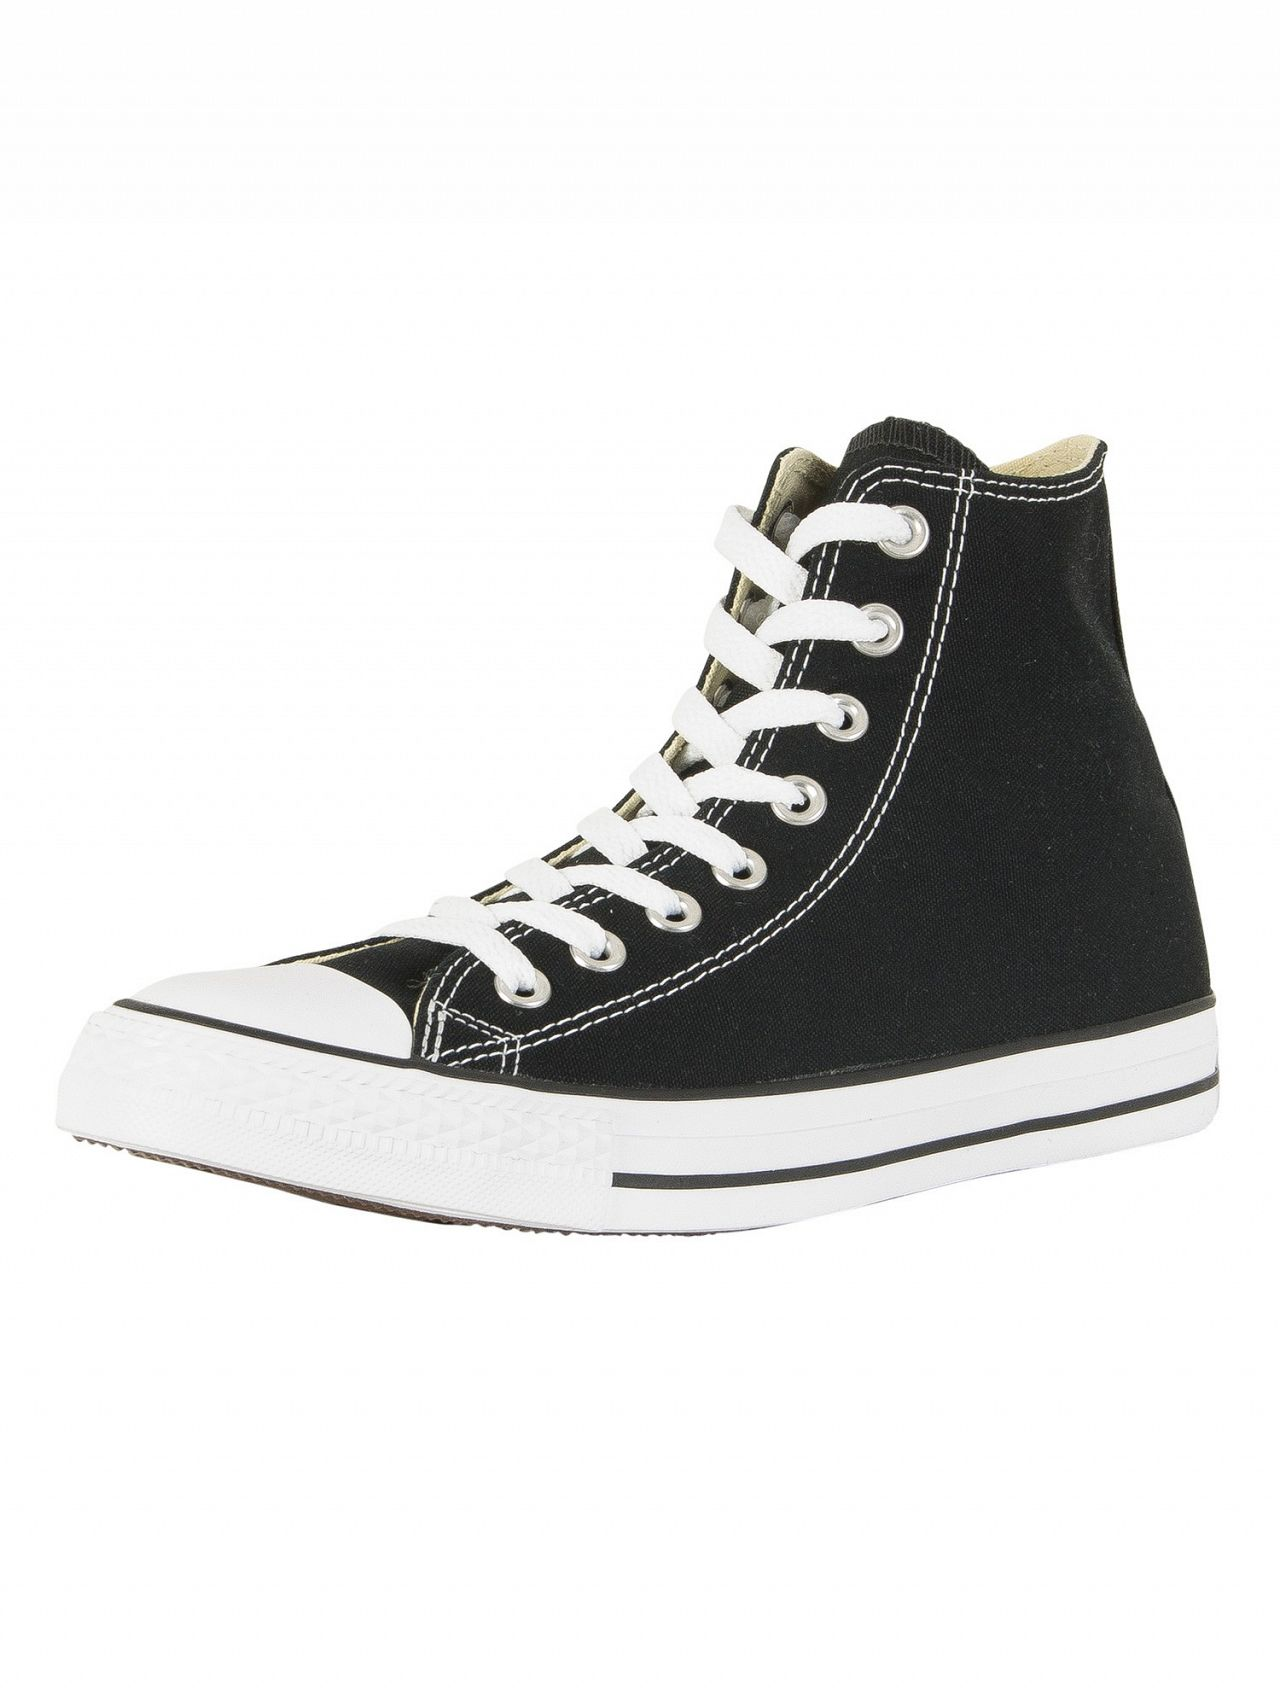 0f7da02f4e6b Converse Black All Star Hi Trainers